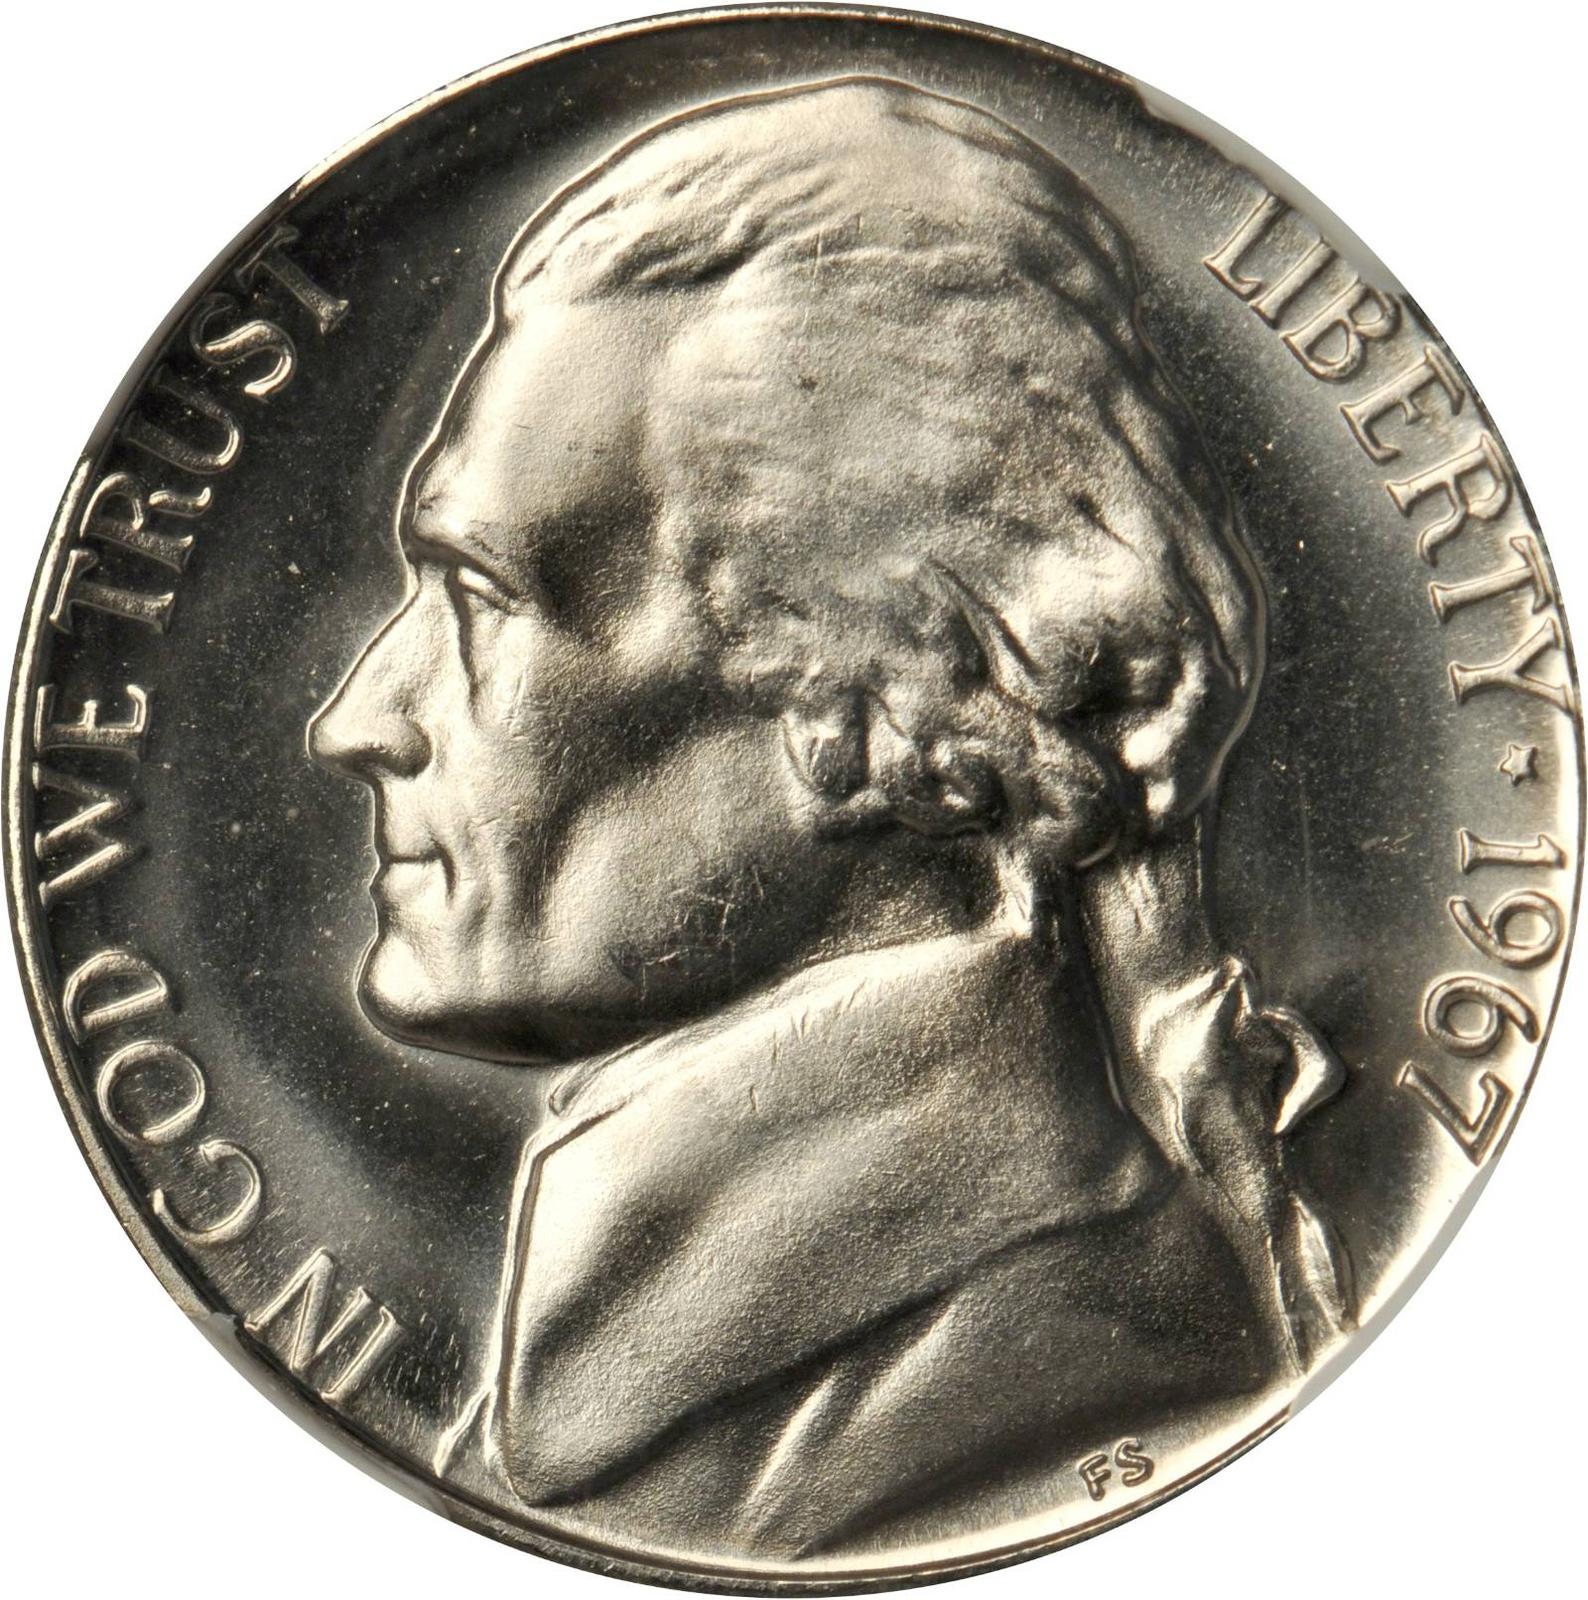 1967 Jefferson Nickel | Sell & Auction Modern Coins